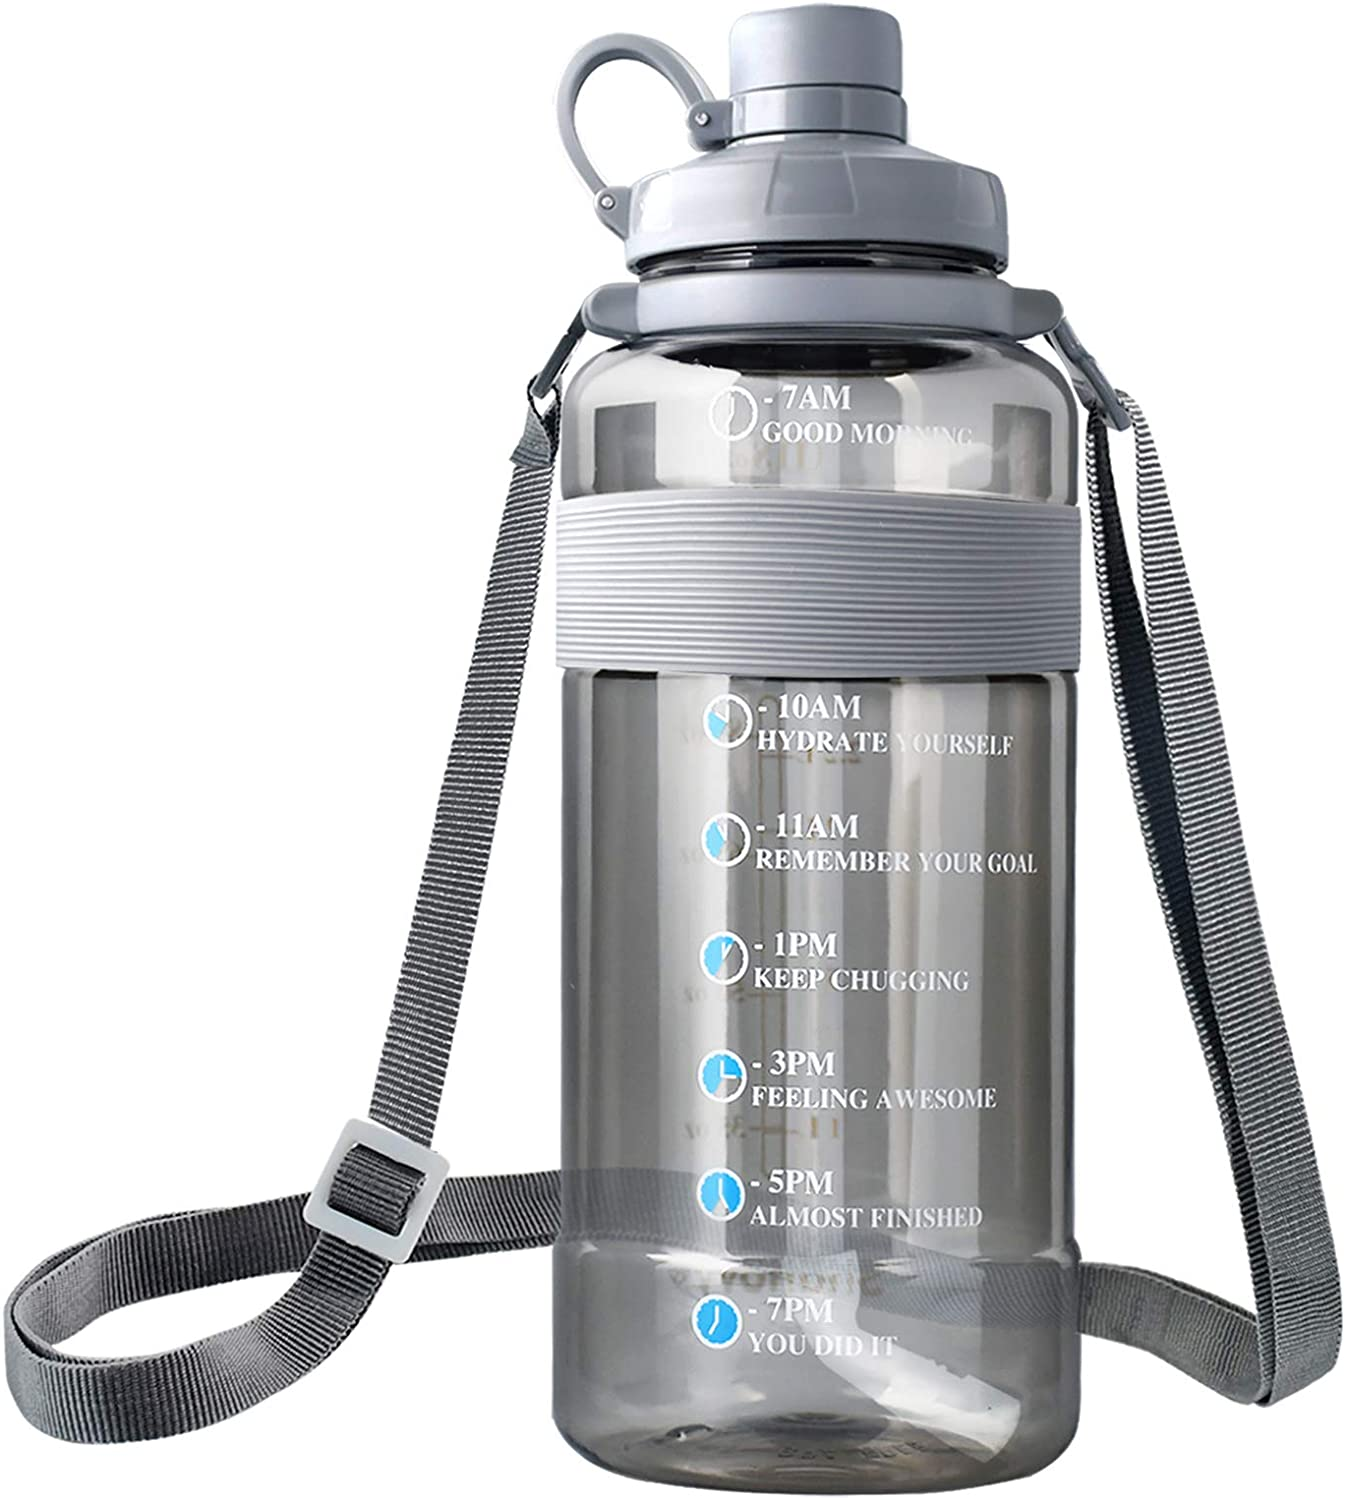 2.3L/ 75 oz Water Bottle with Handle Silicone, Lightweight Portable Water Bottle with Strap Inspirational Measured Water Bottle with Times Big Water Jug with Straw Drink Water Reminder Bottle